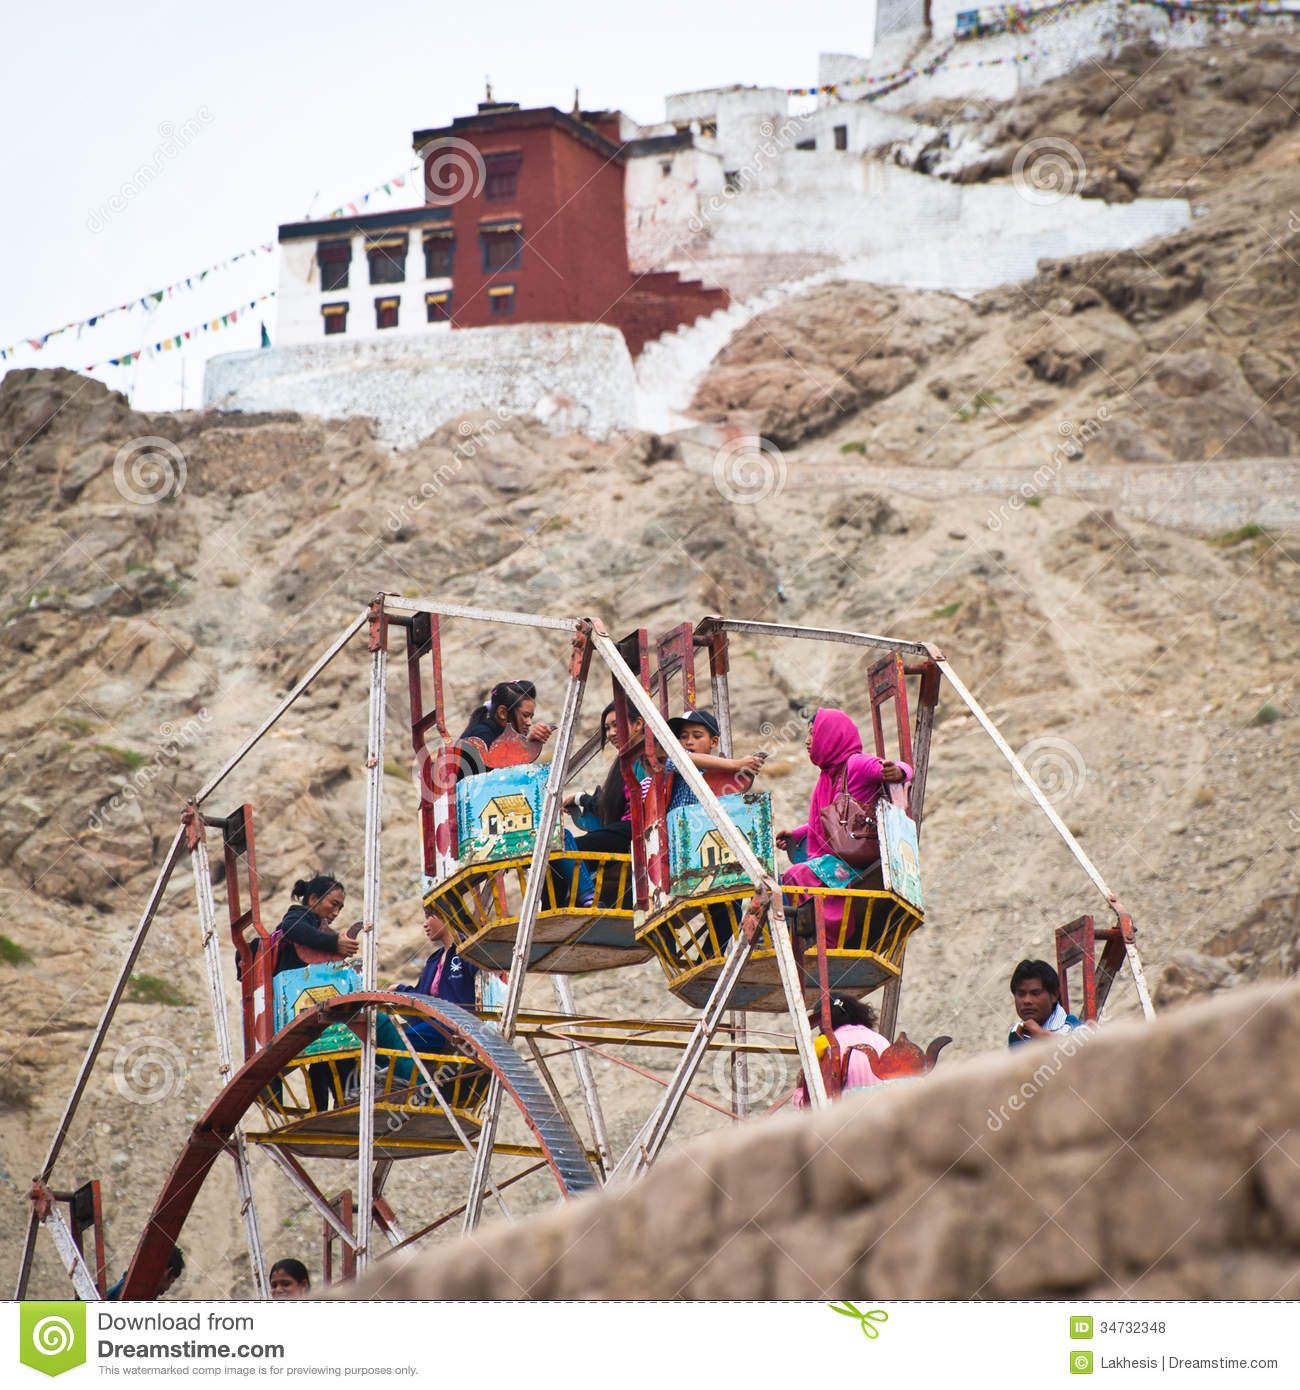 Tibetan people at fairground enjoying ferris wheel